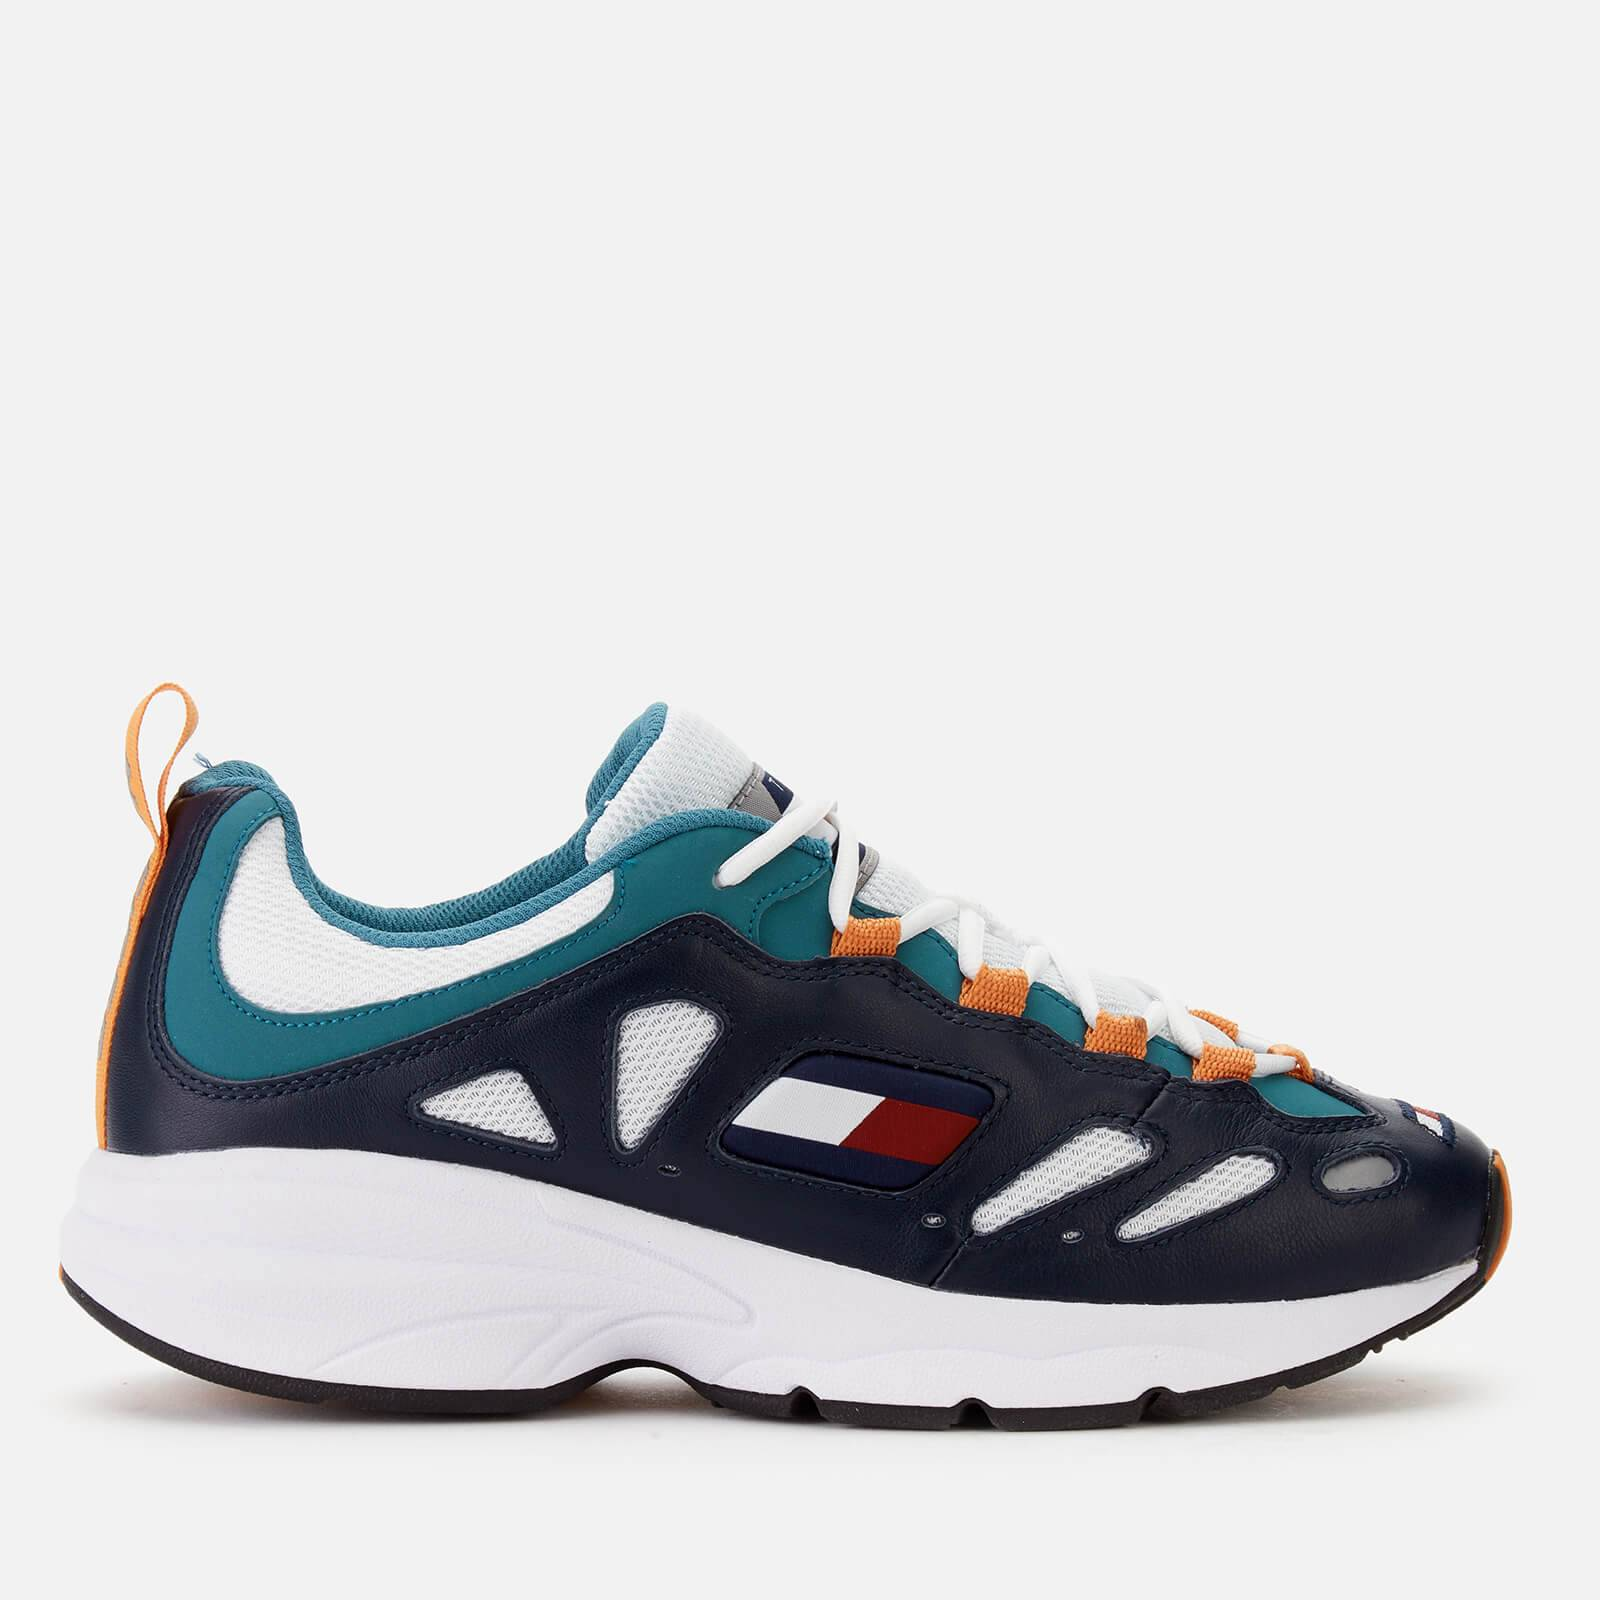 Tommy Jeans Men's Retro Chunky Runner Style Trainers - Blue/Russet/Orange - EU 45/UK 10.5 - Blue